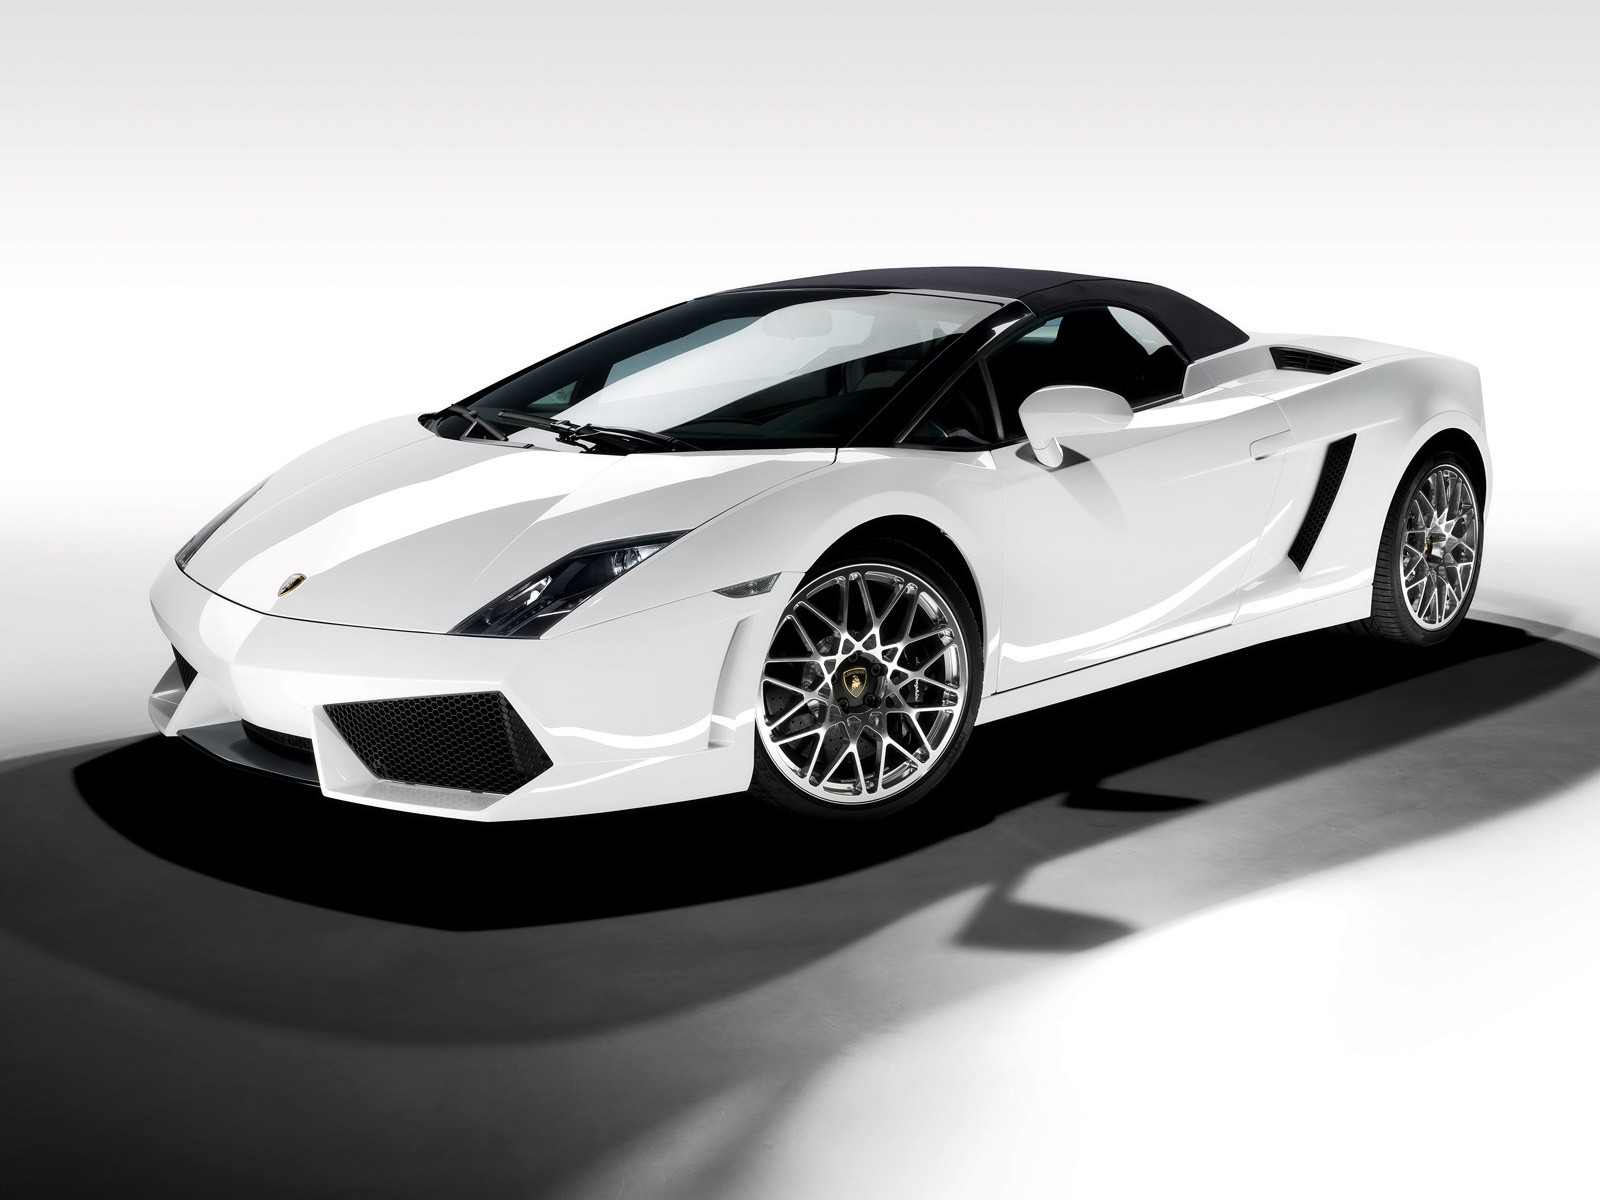 Lamborghini Gallardo LP560 Wallpaper Iphone